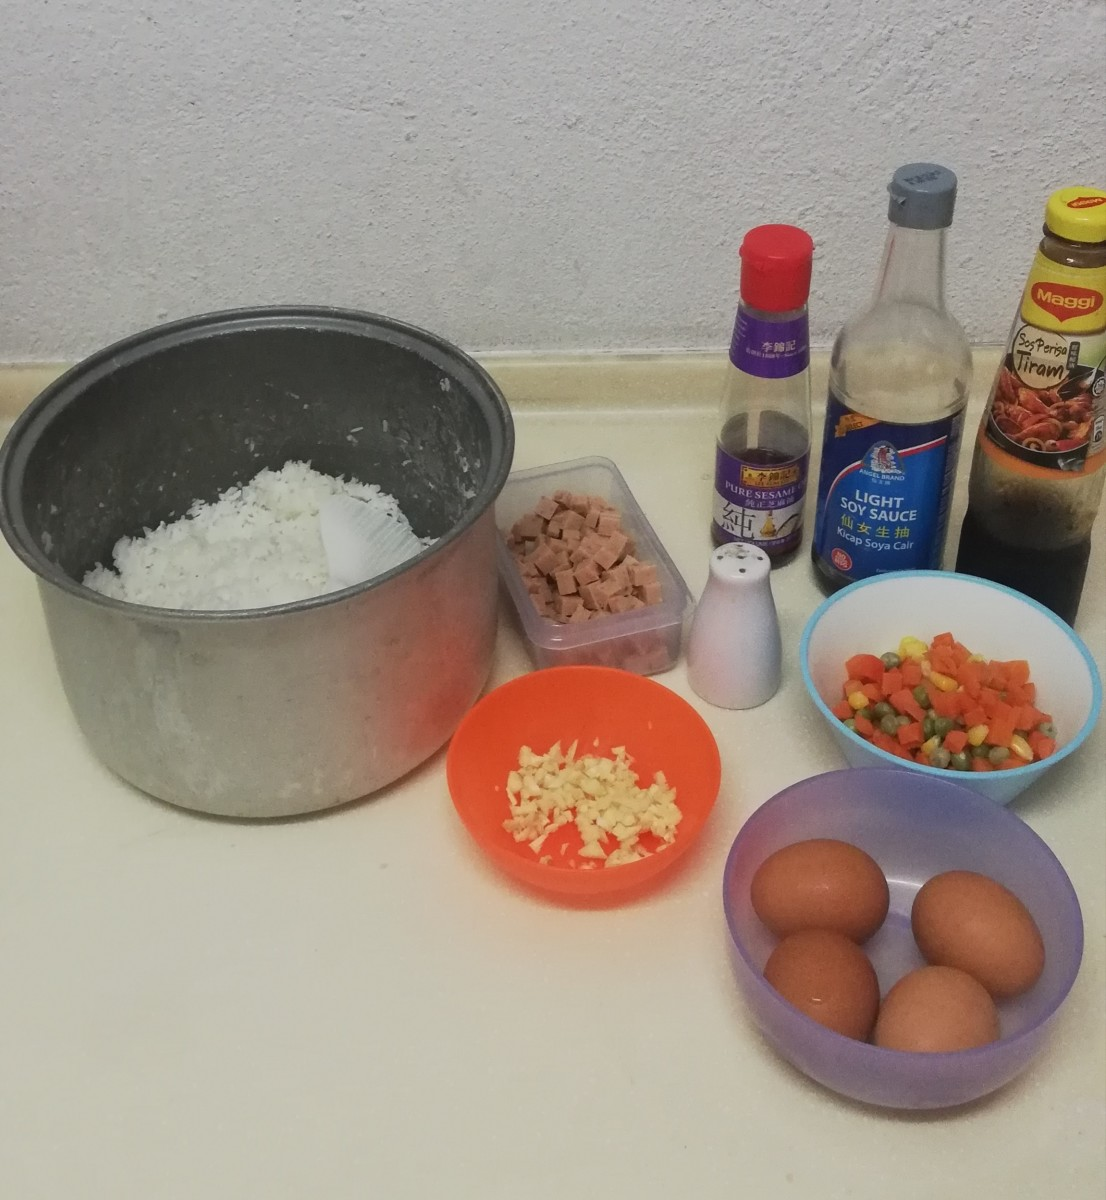 Ingredients for egg fried rice